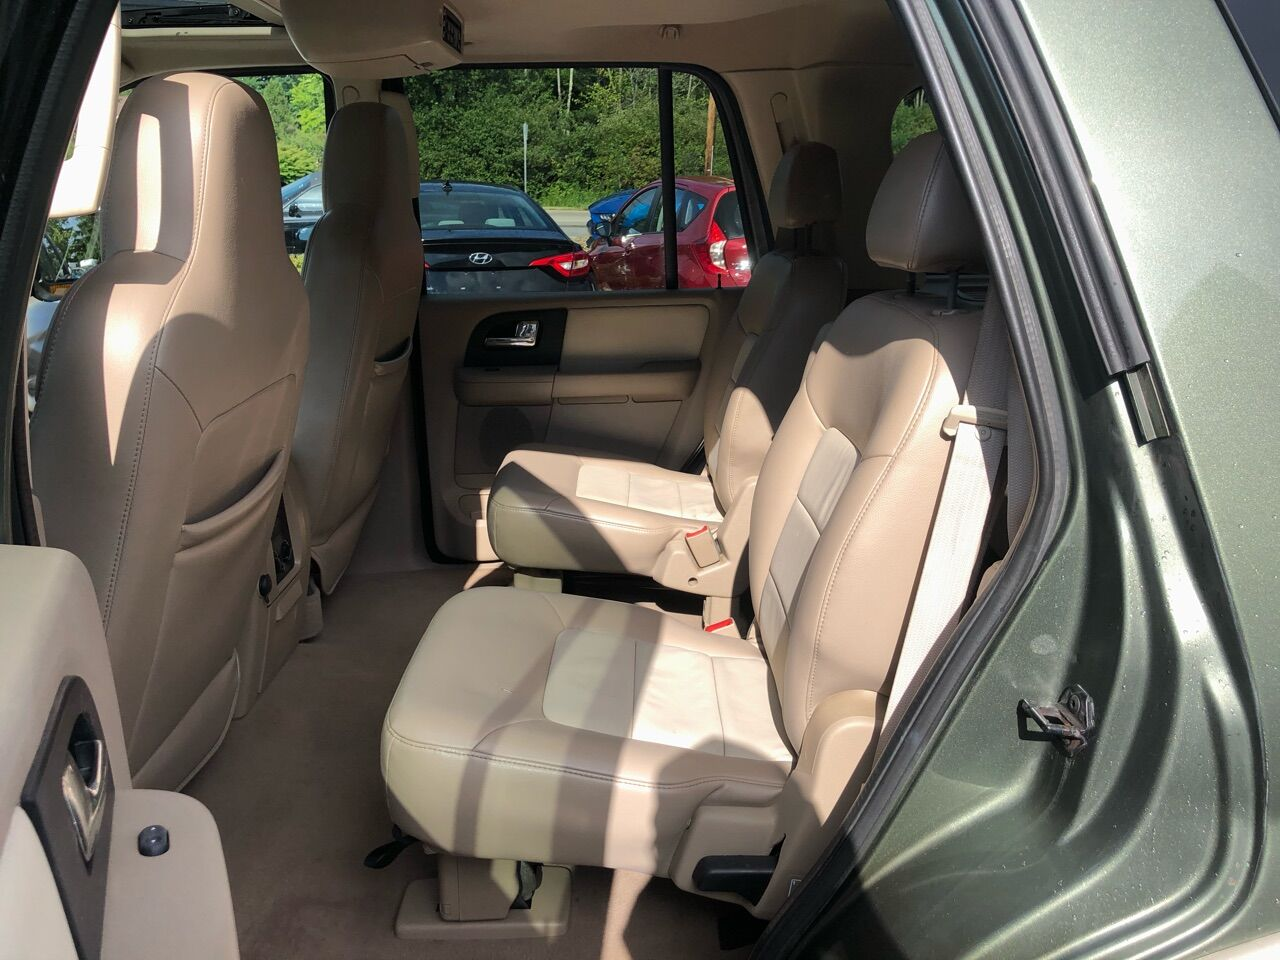 2005 Ford Expedition Sport Utility